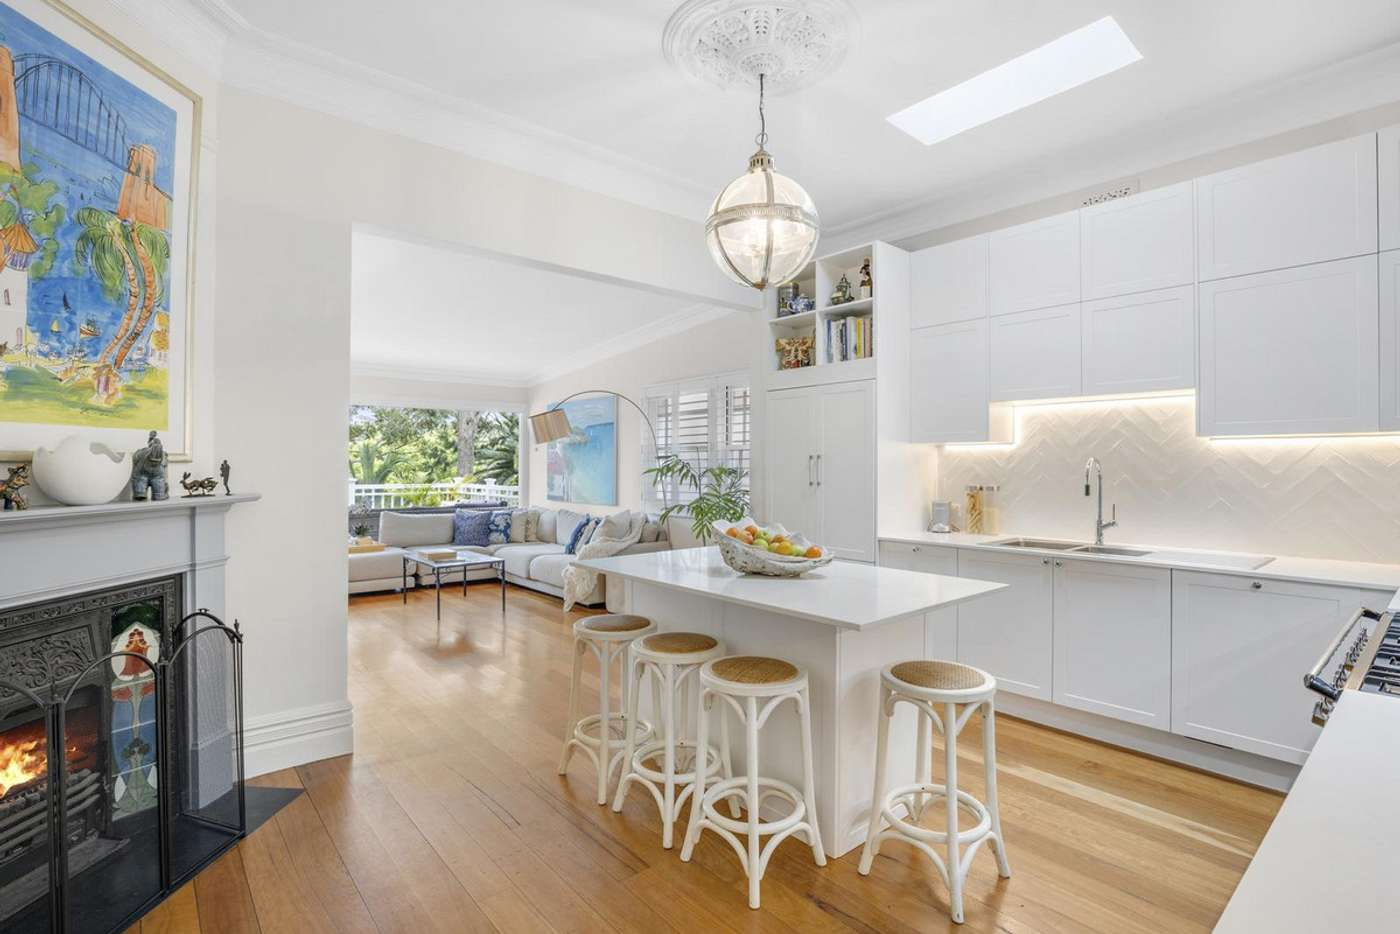 Main view of Homely house listing, 24 Somerset Street, Mosman NSW 2088